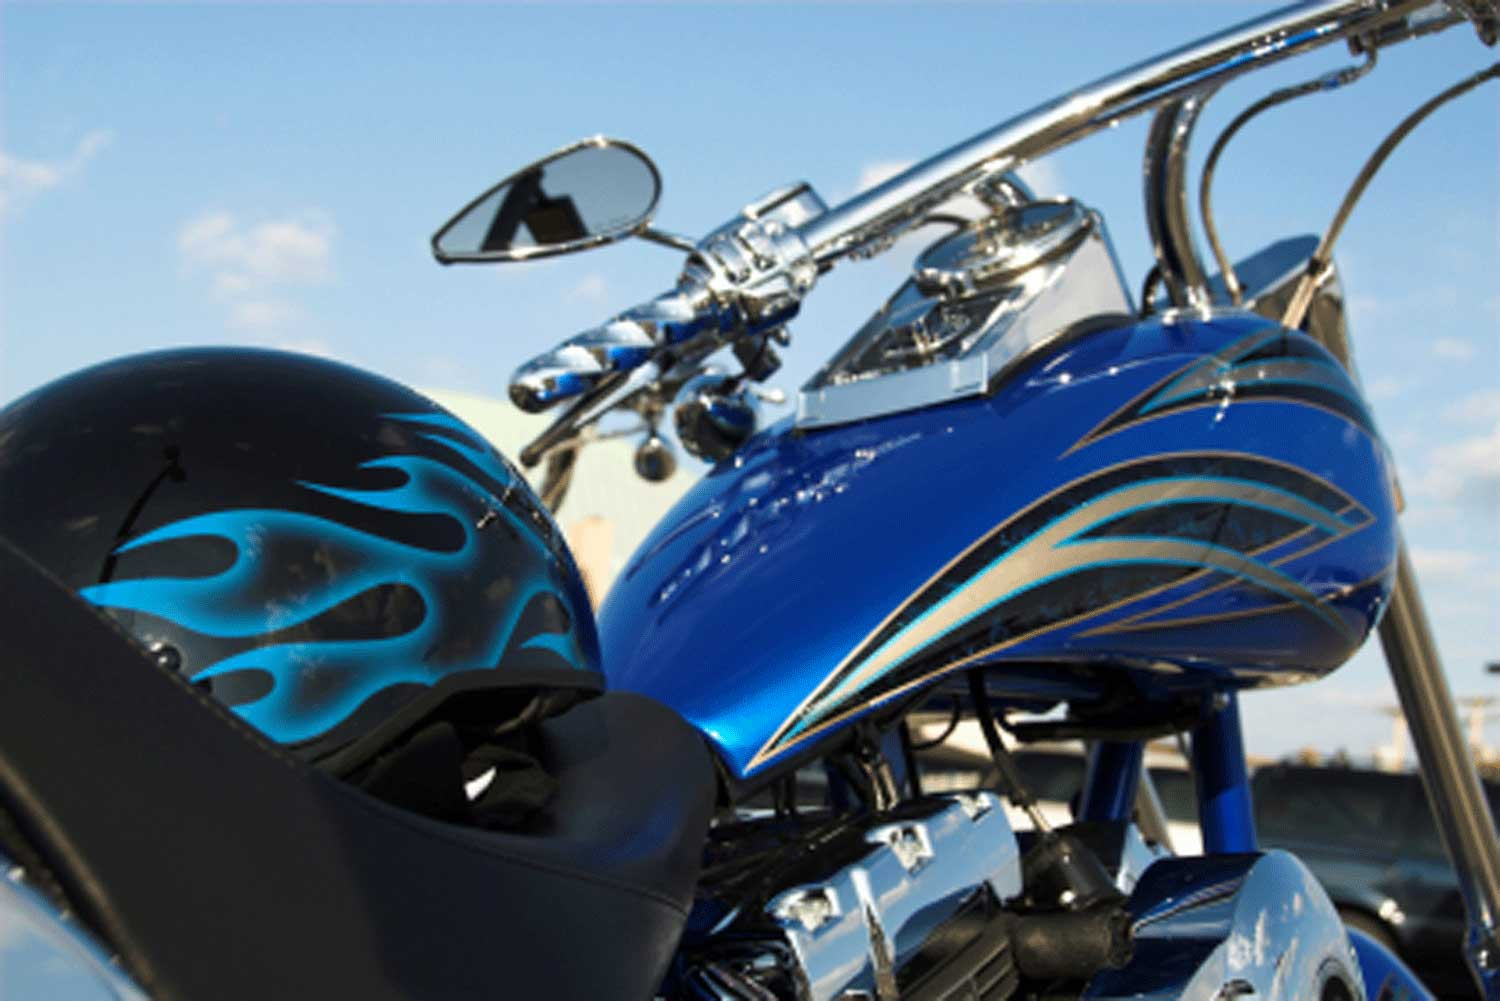 Orlando Motorcycle Accident Attorney Orange County Florida Motorcycle Injury Lawyer Seminole County Motorcycle Attorneys Osceola County FL Motorcycle Accident Lawyers